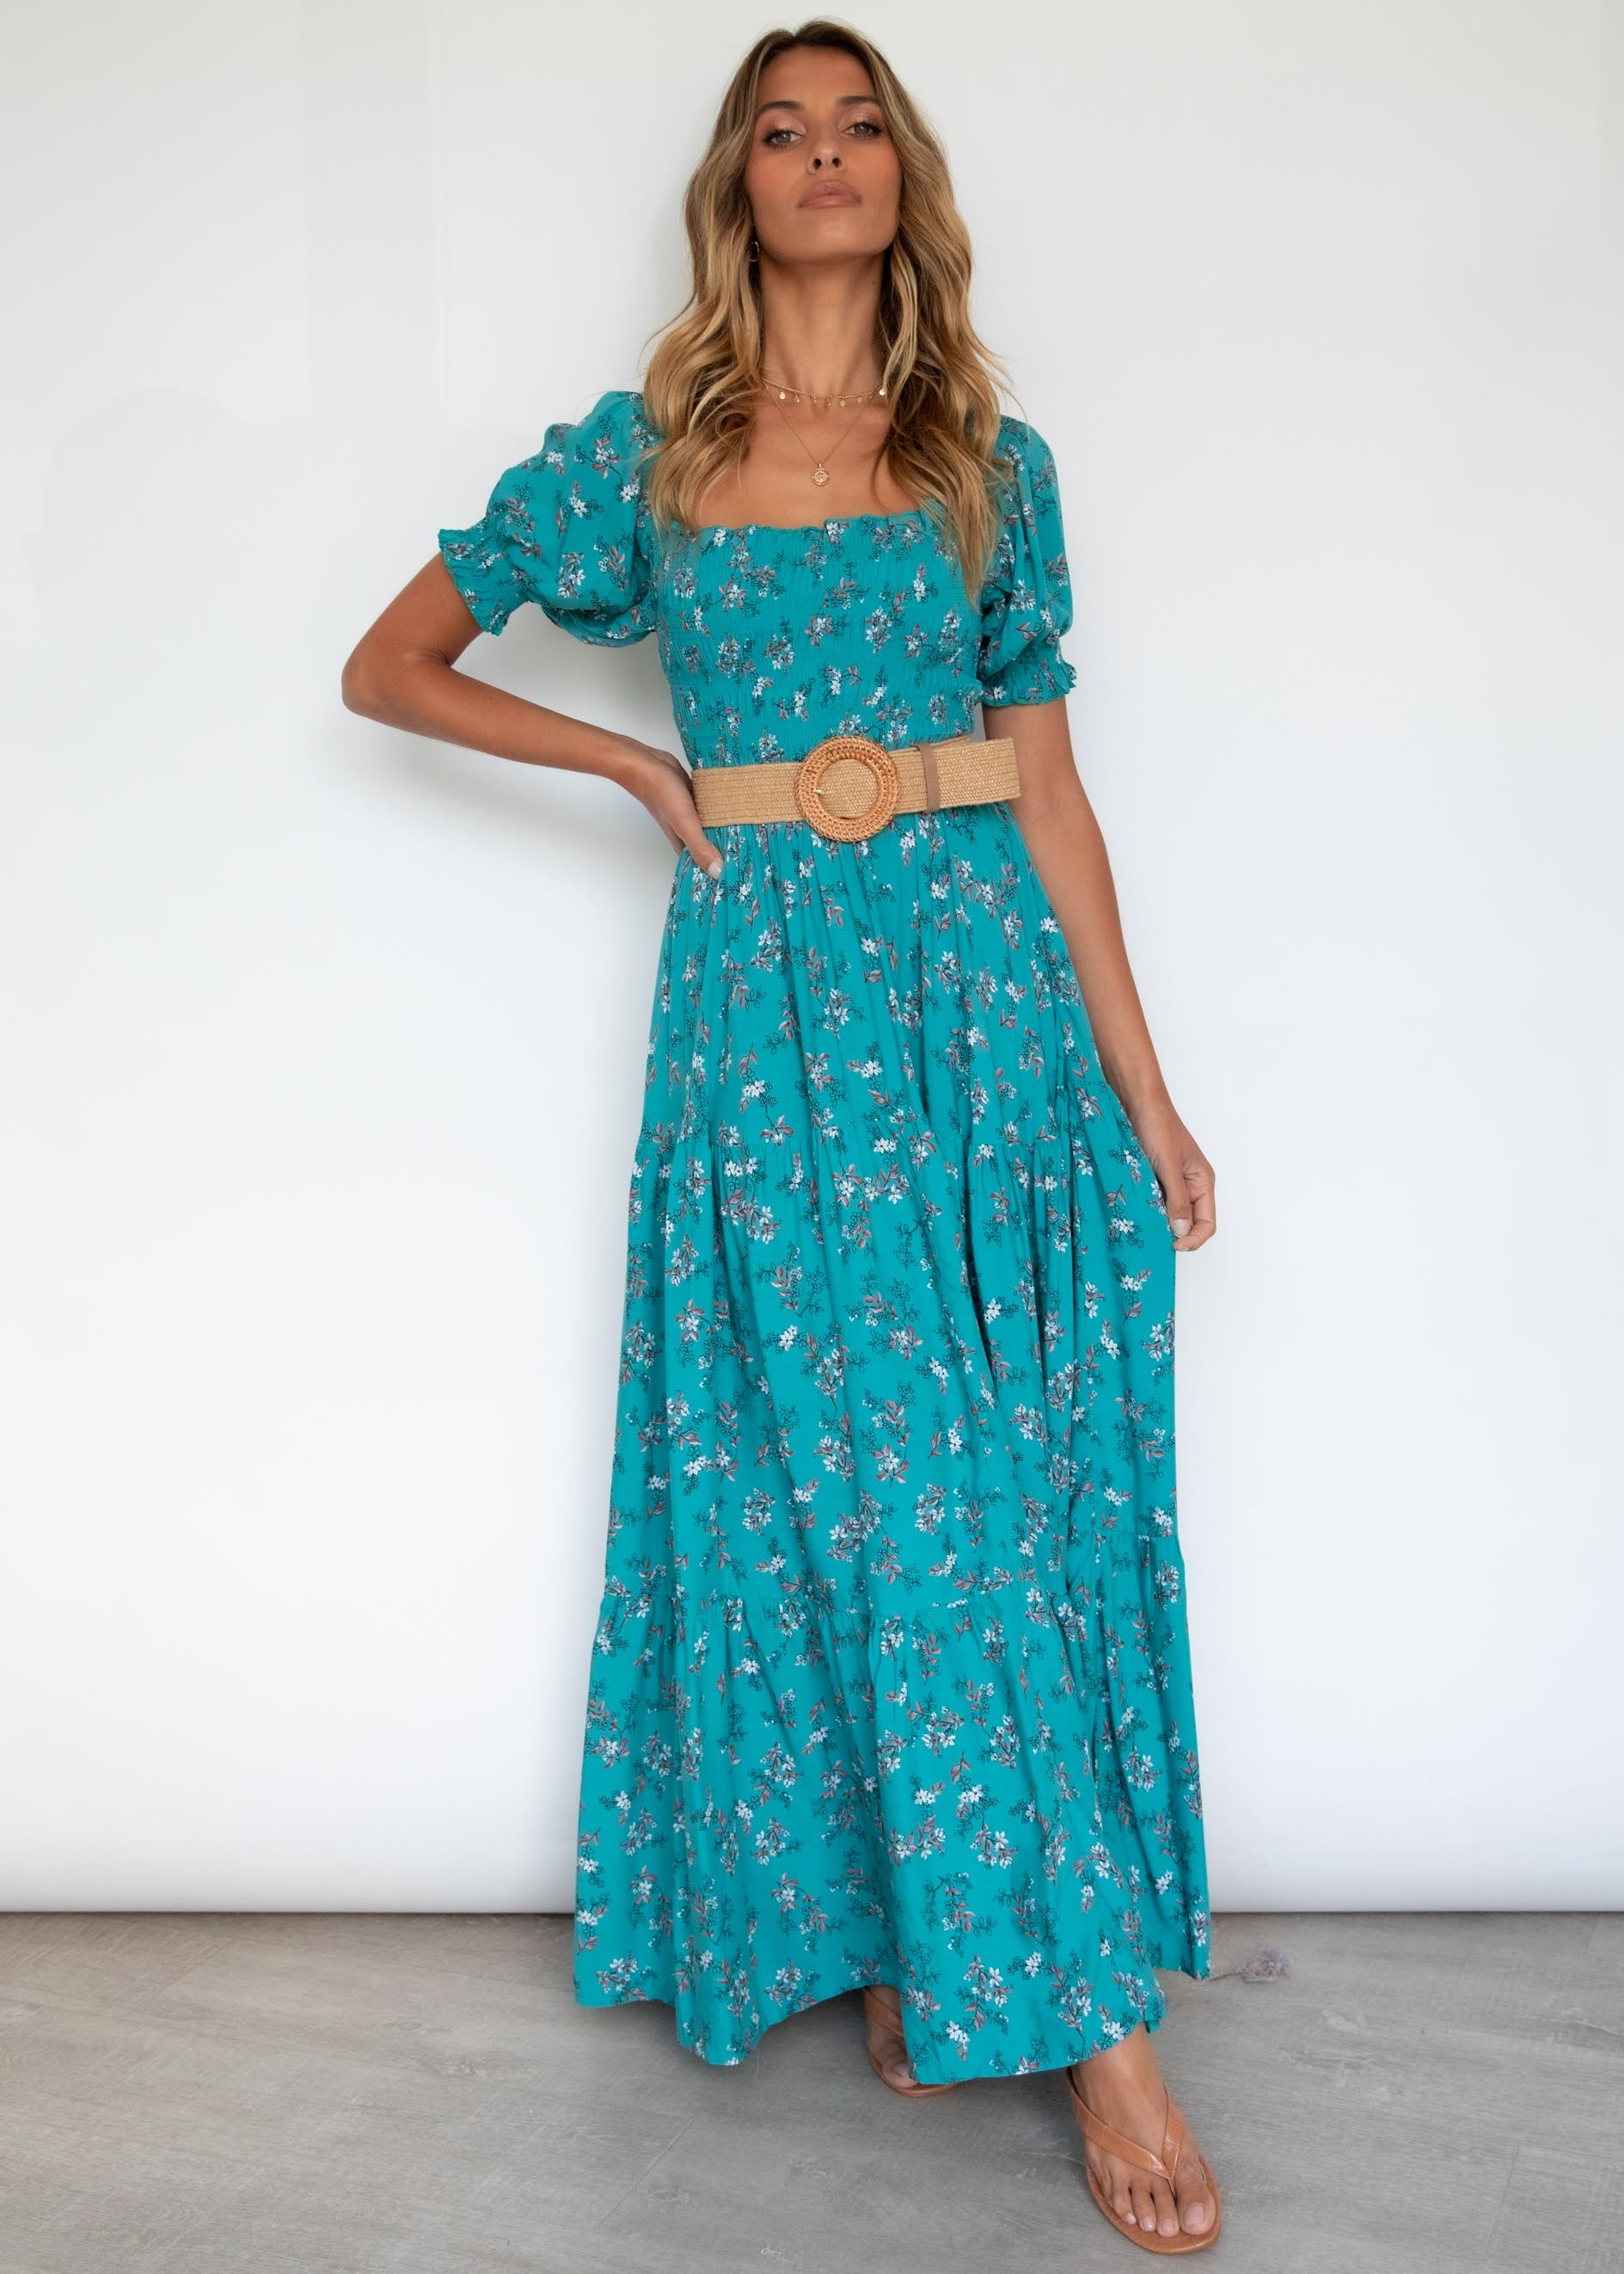 Claudette Maxi Dress - Ocean Eyes